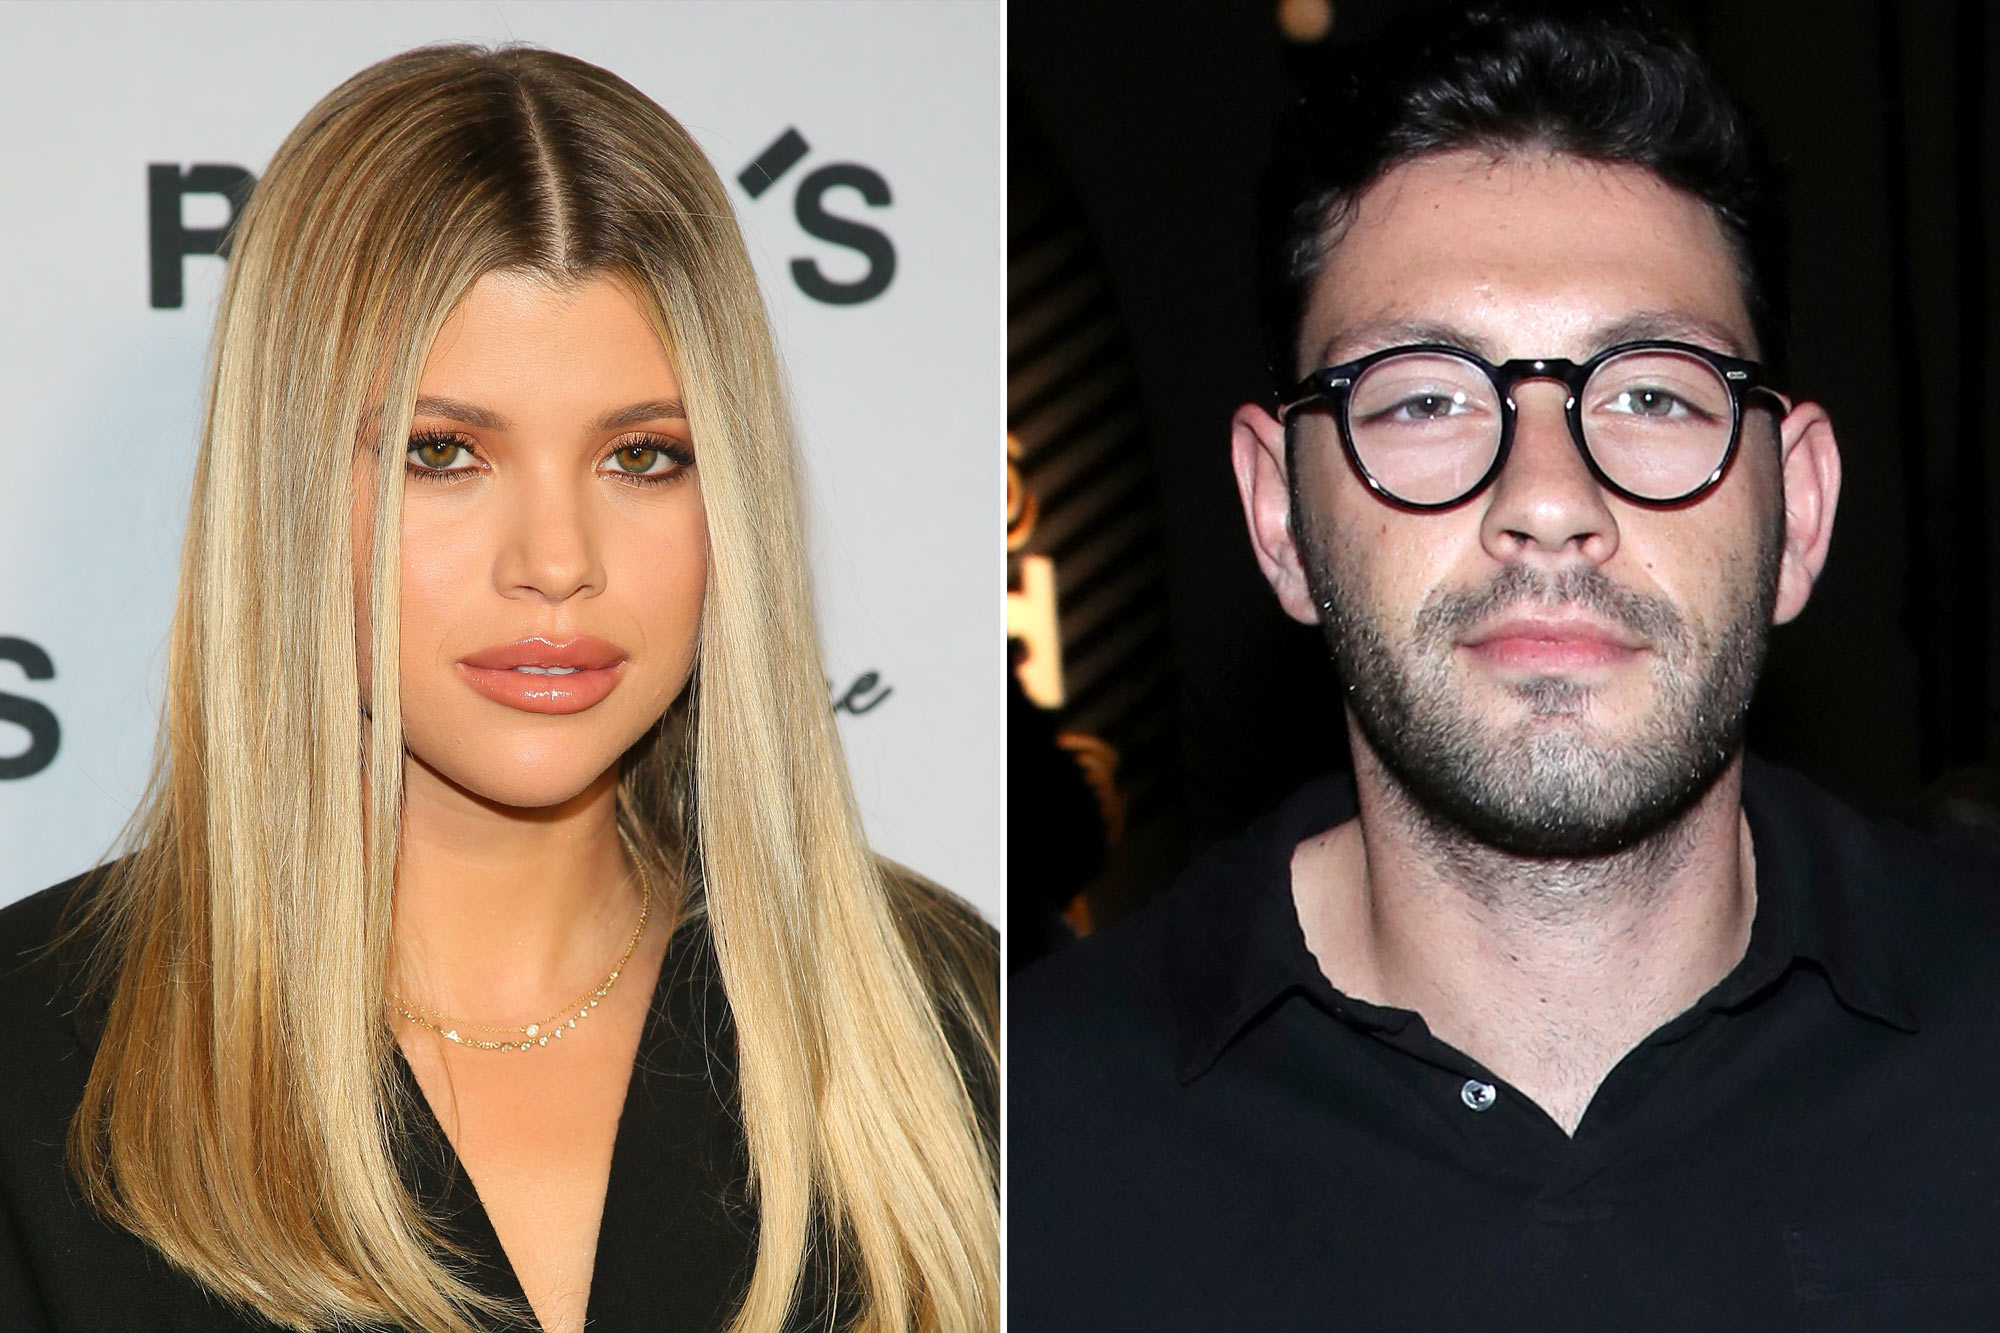 Sofia Richie's Father Lionel Richie Totally Approves Of Her Current Boyfriend Elliot Grainge – Here's Why!